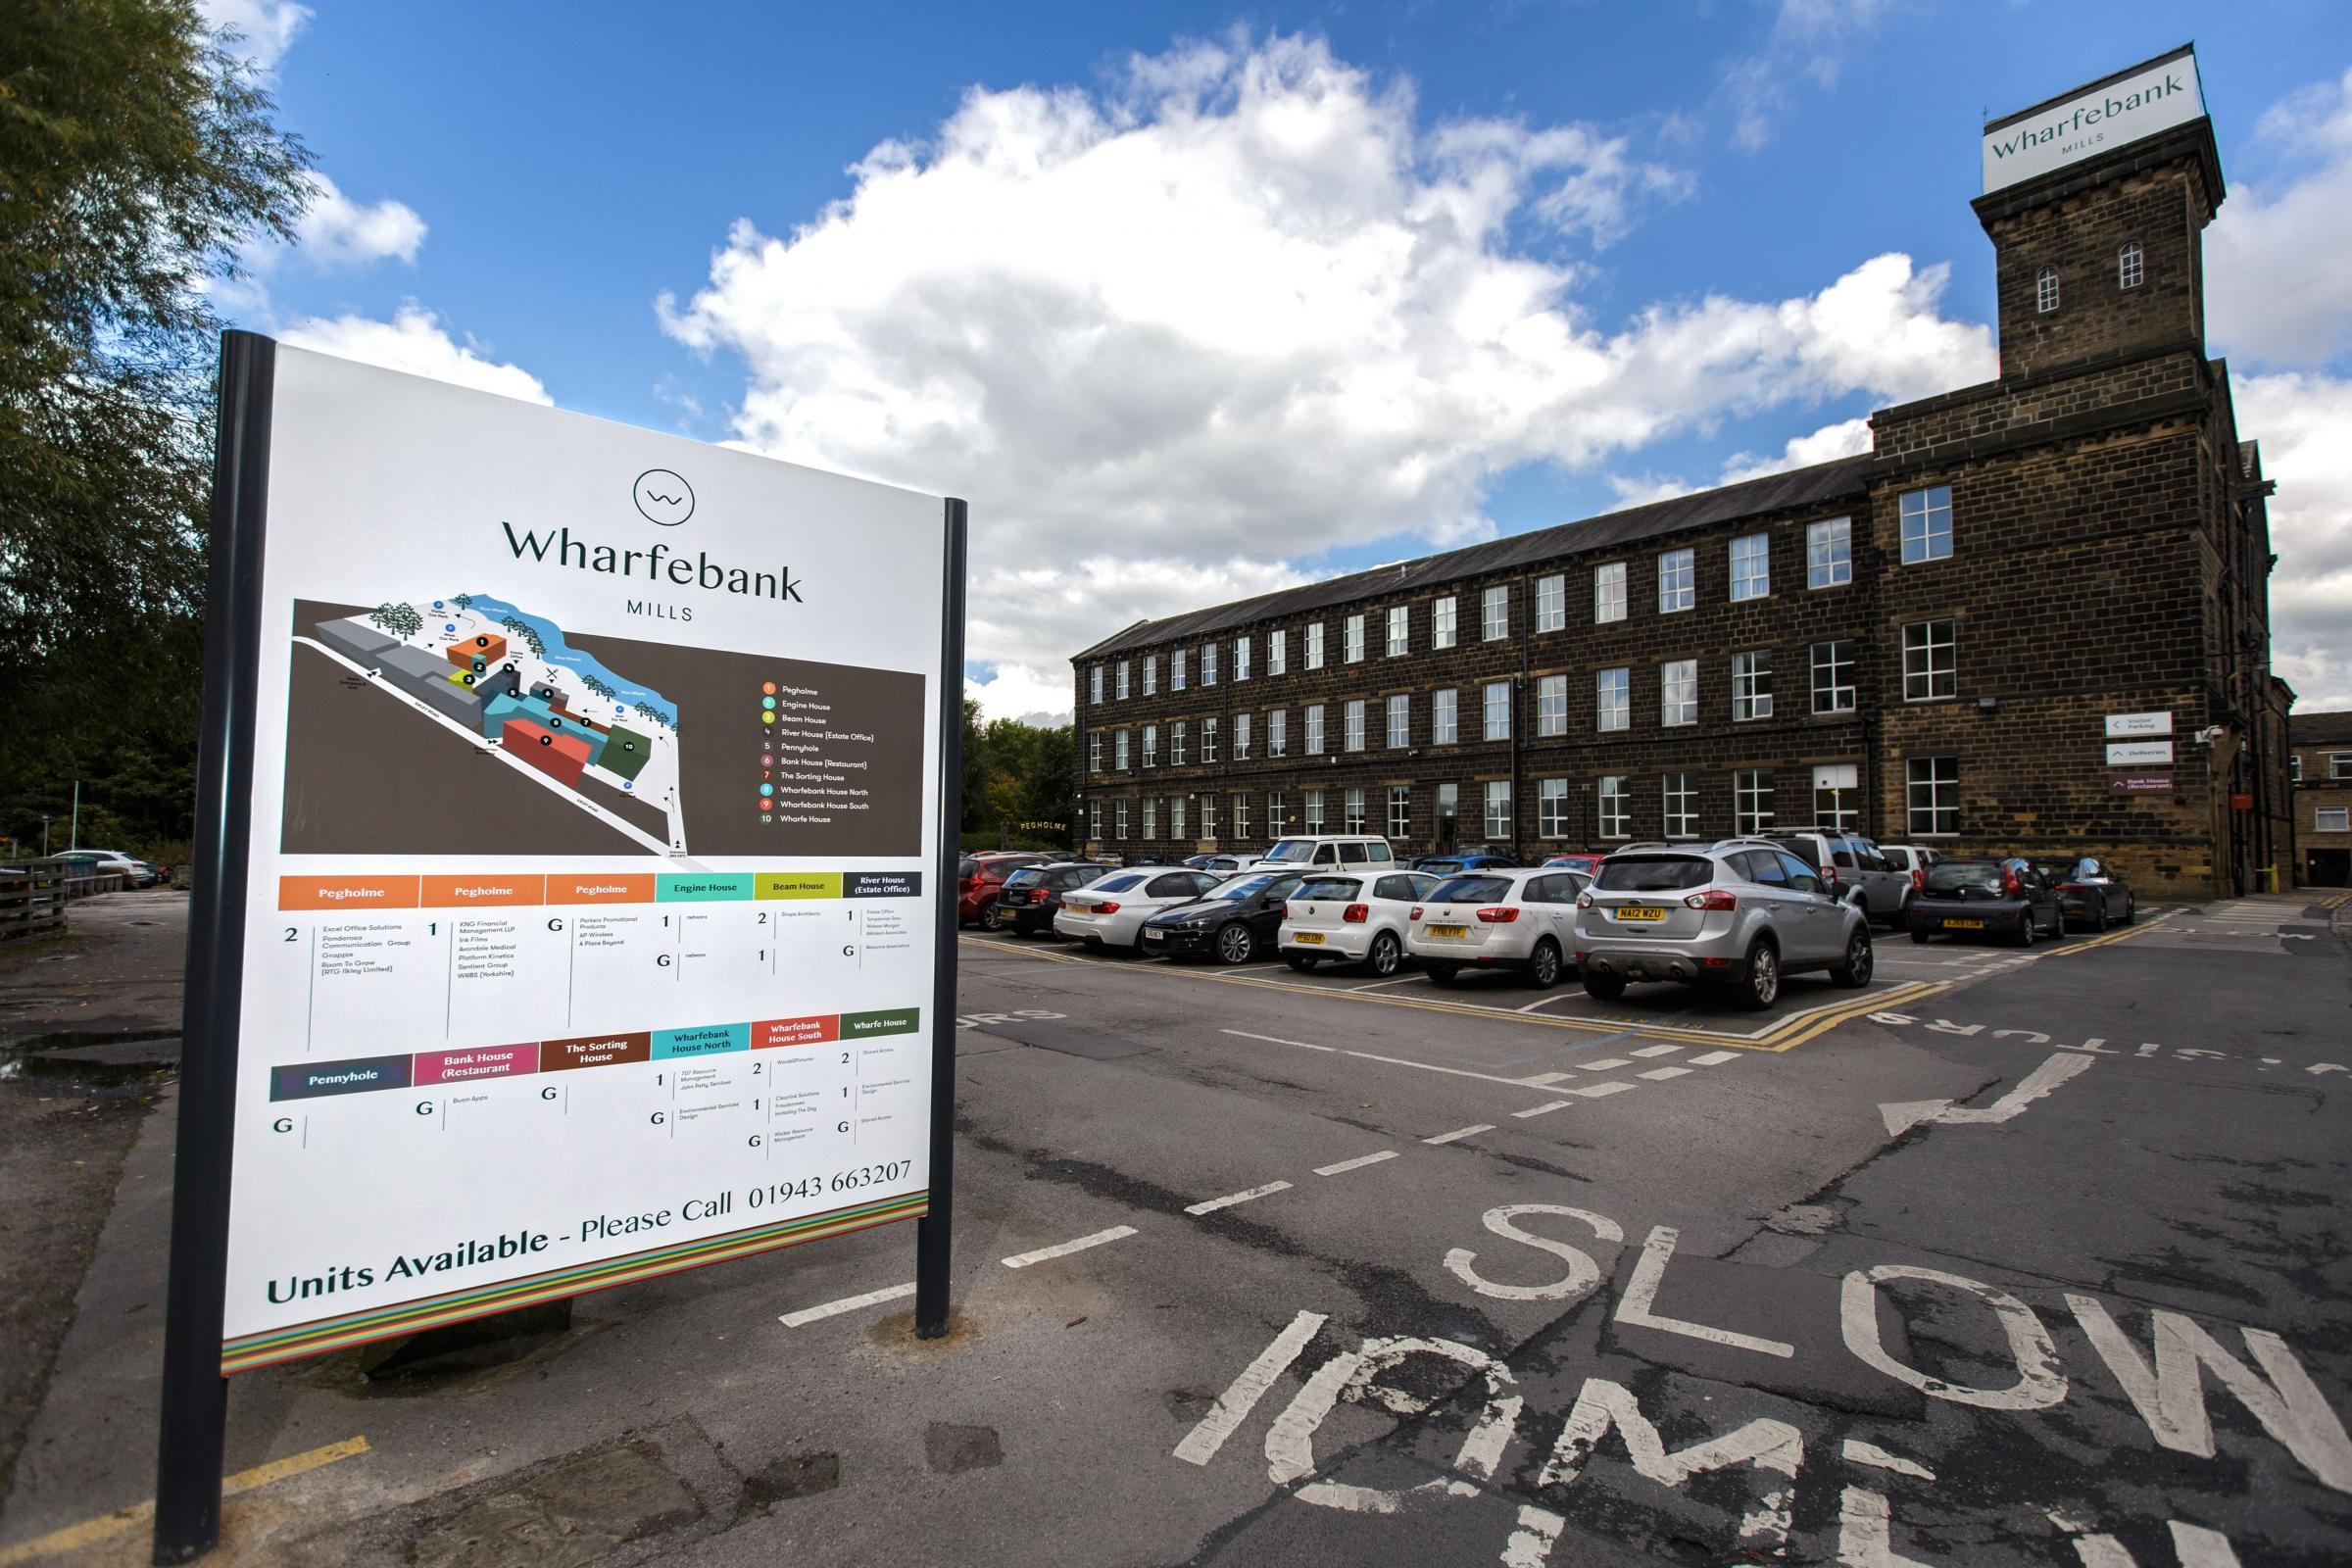 Wharfebank Mills at Otley is enjoying an 'influx' of new tenants following a £500,000 investment